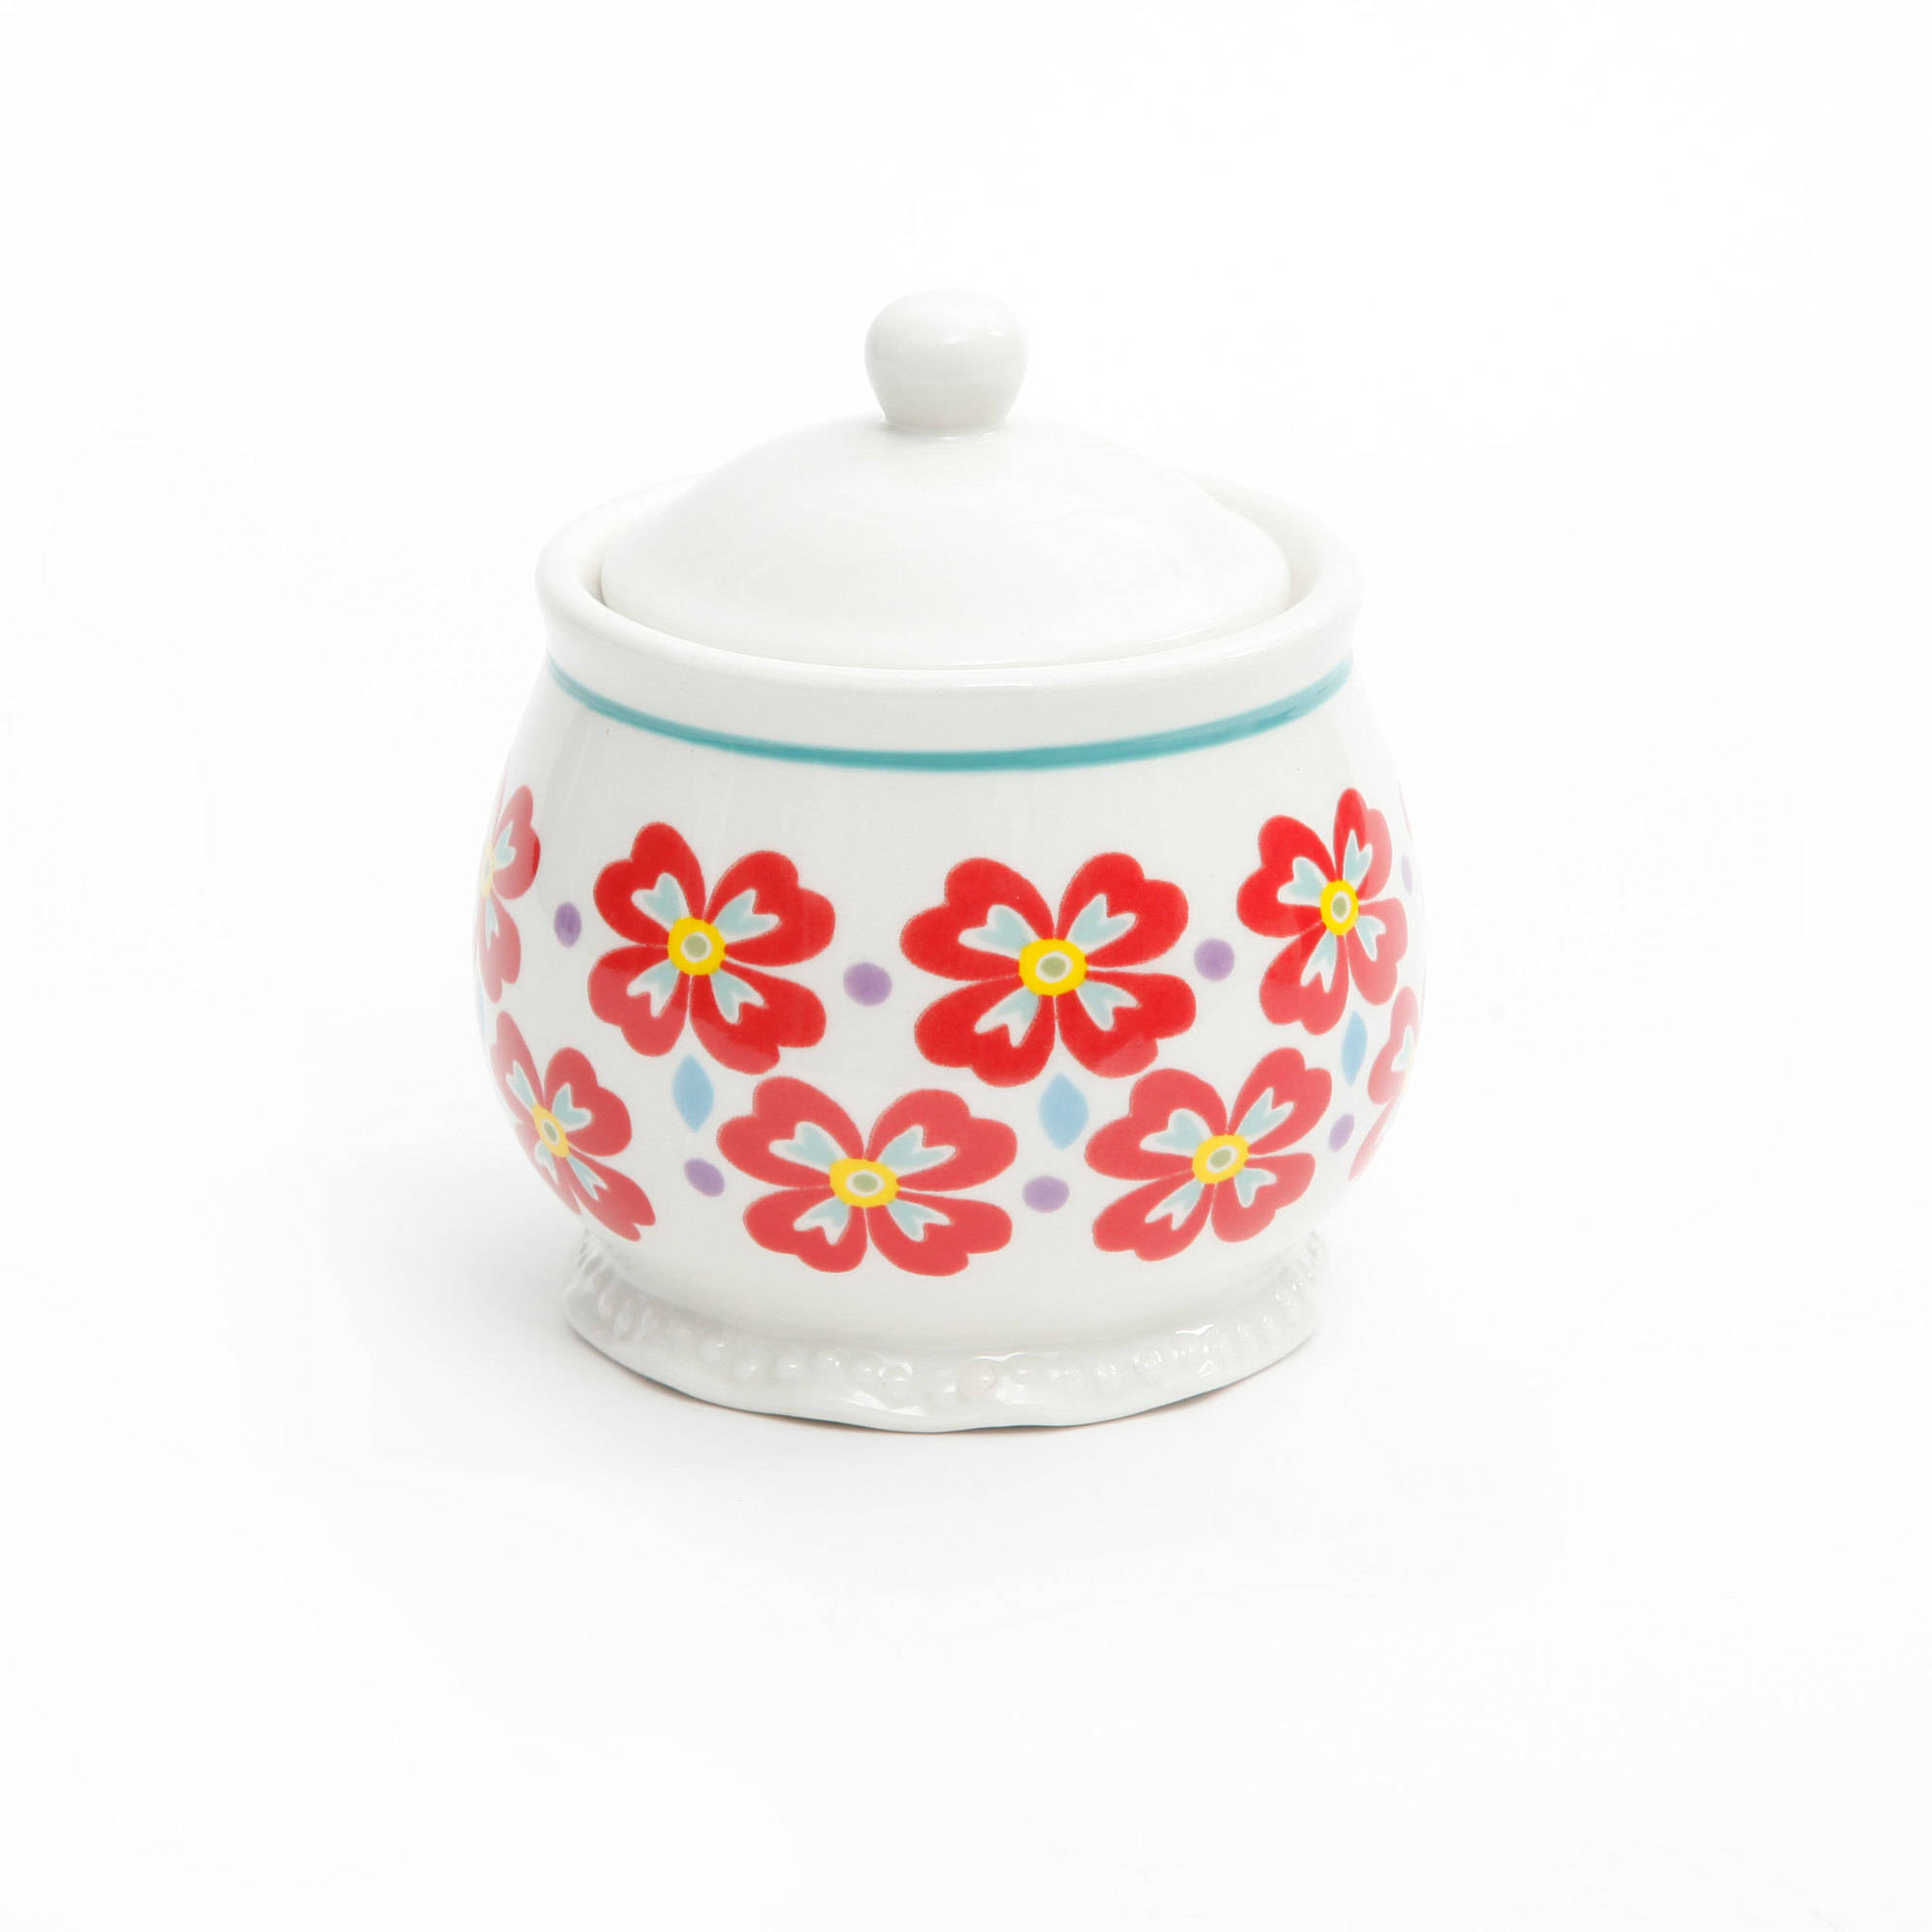 Sugar bowls with lids - The Pioneer Woman Flea Market Decorated Sugar And Creamer With Salt And Pepper Shakers Walmart Com